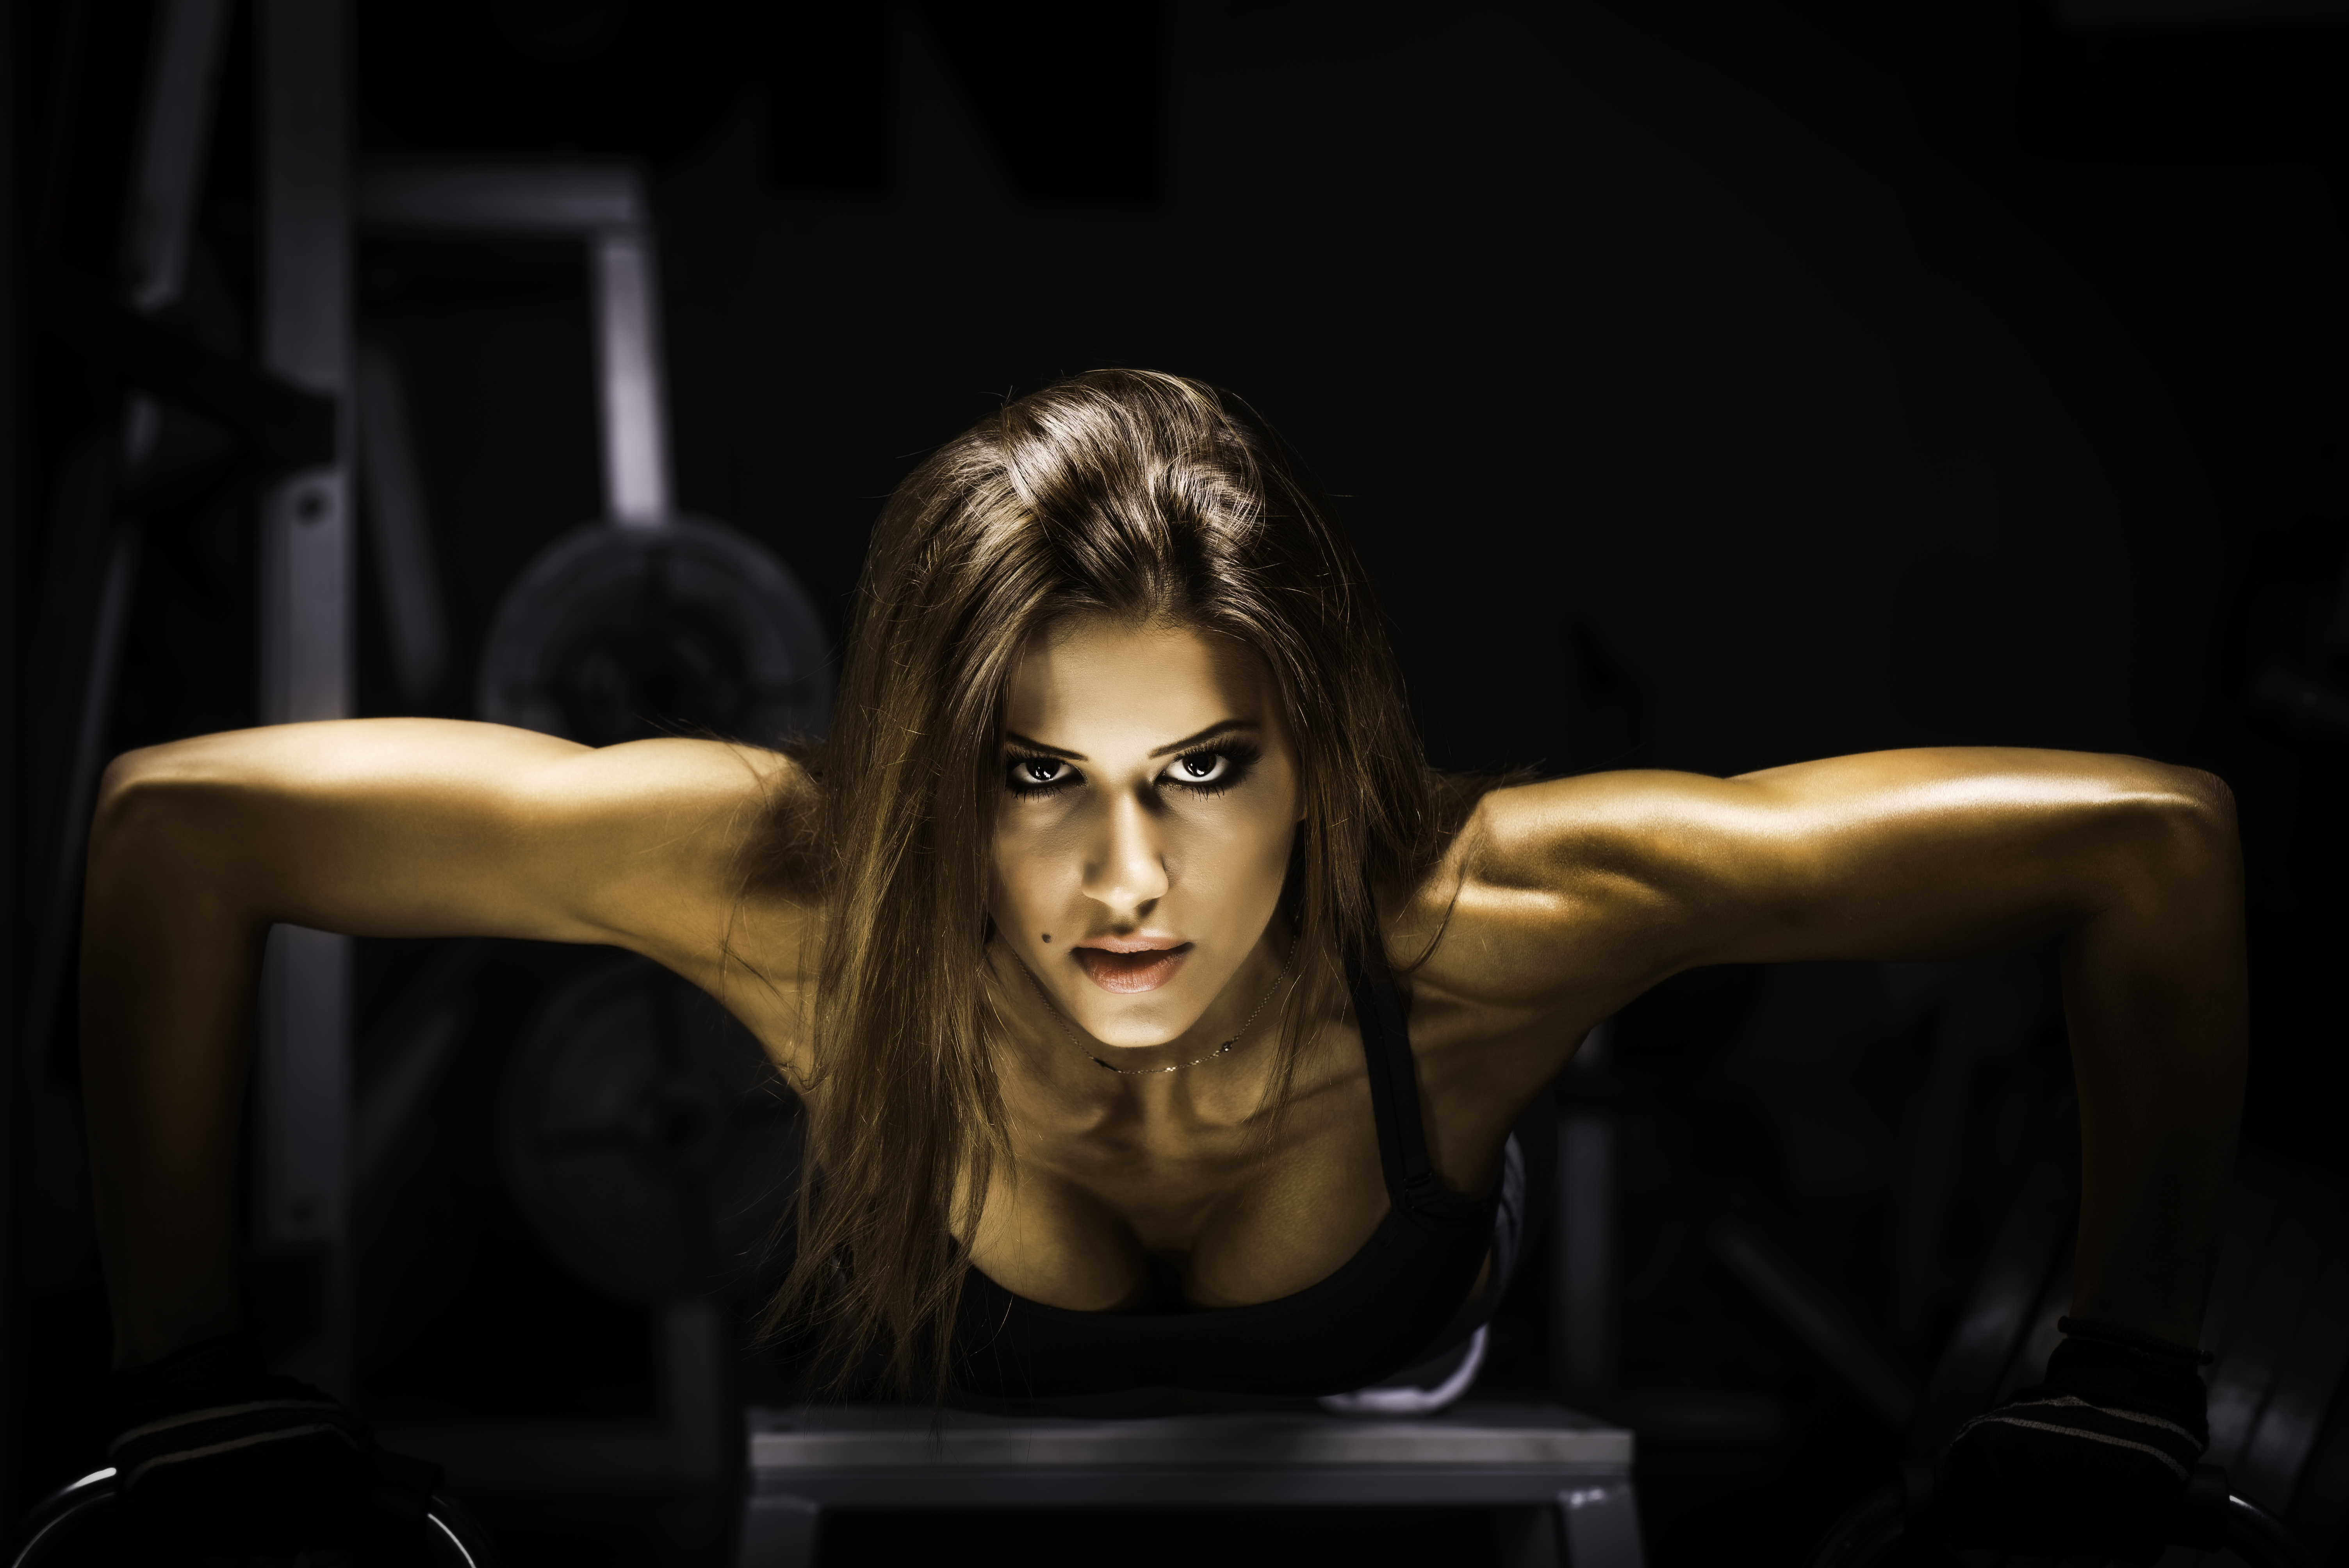 Study Says Women Have A Hell Of A Lot More Stamina Than Men